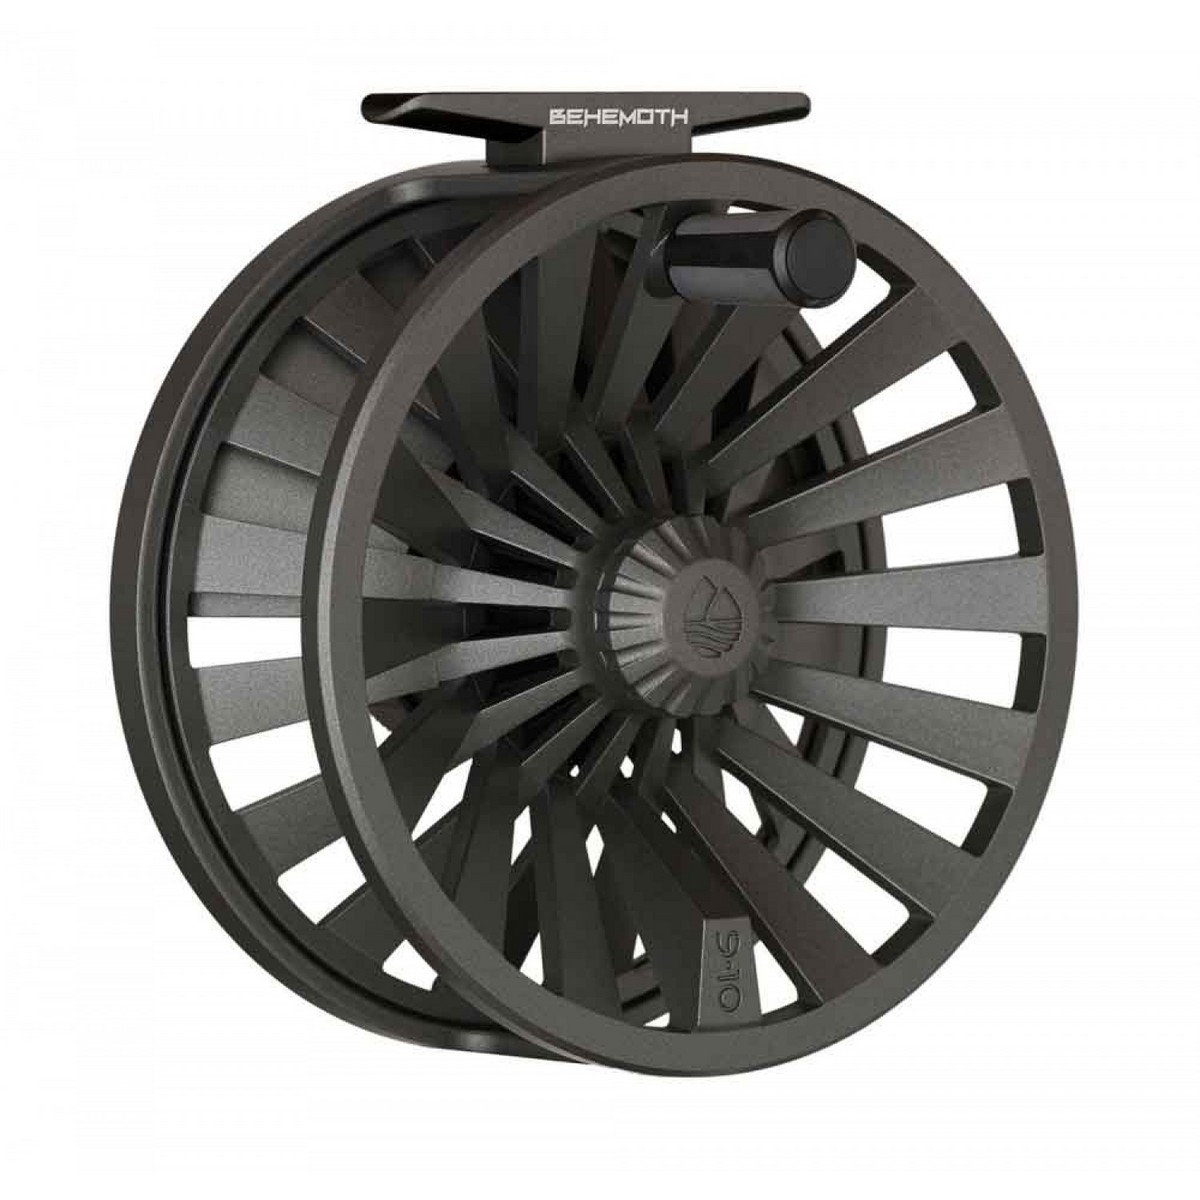 Redington Behemoth Fly Reel 5/6 Wt